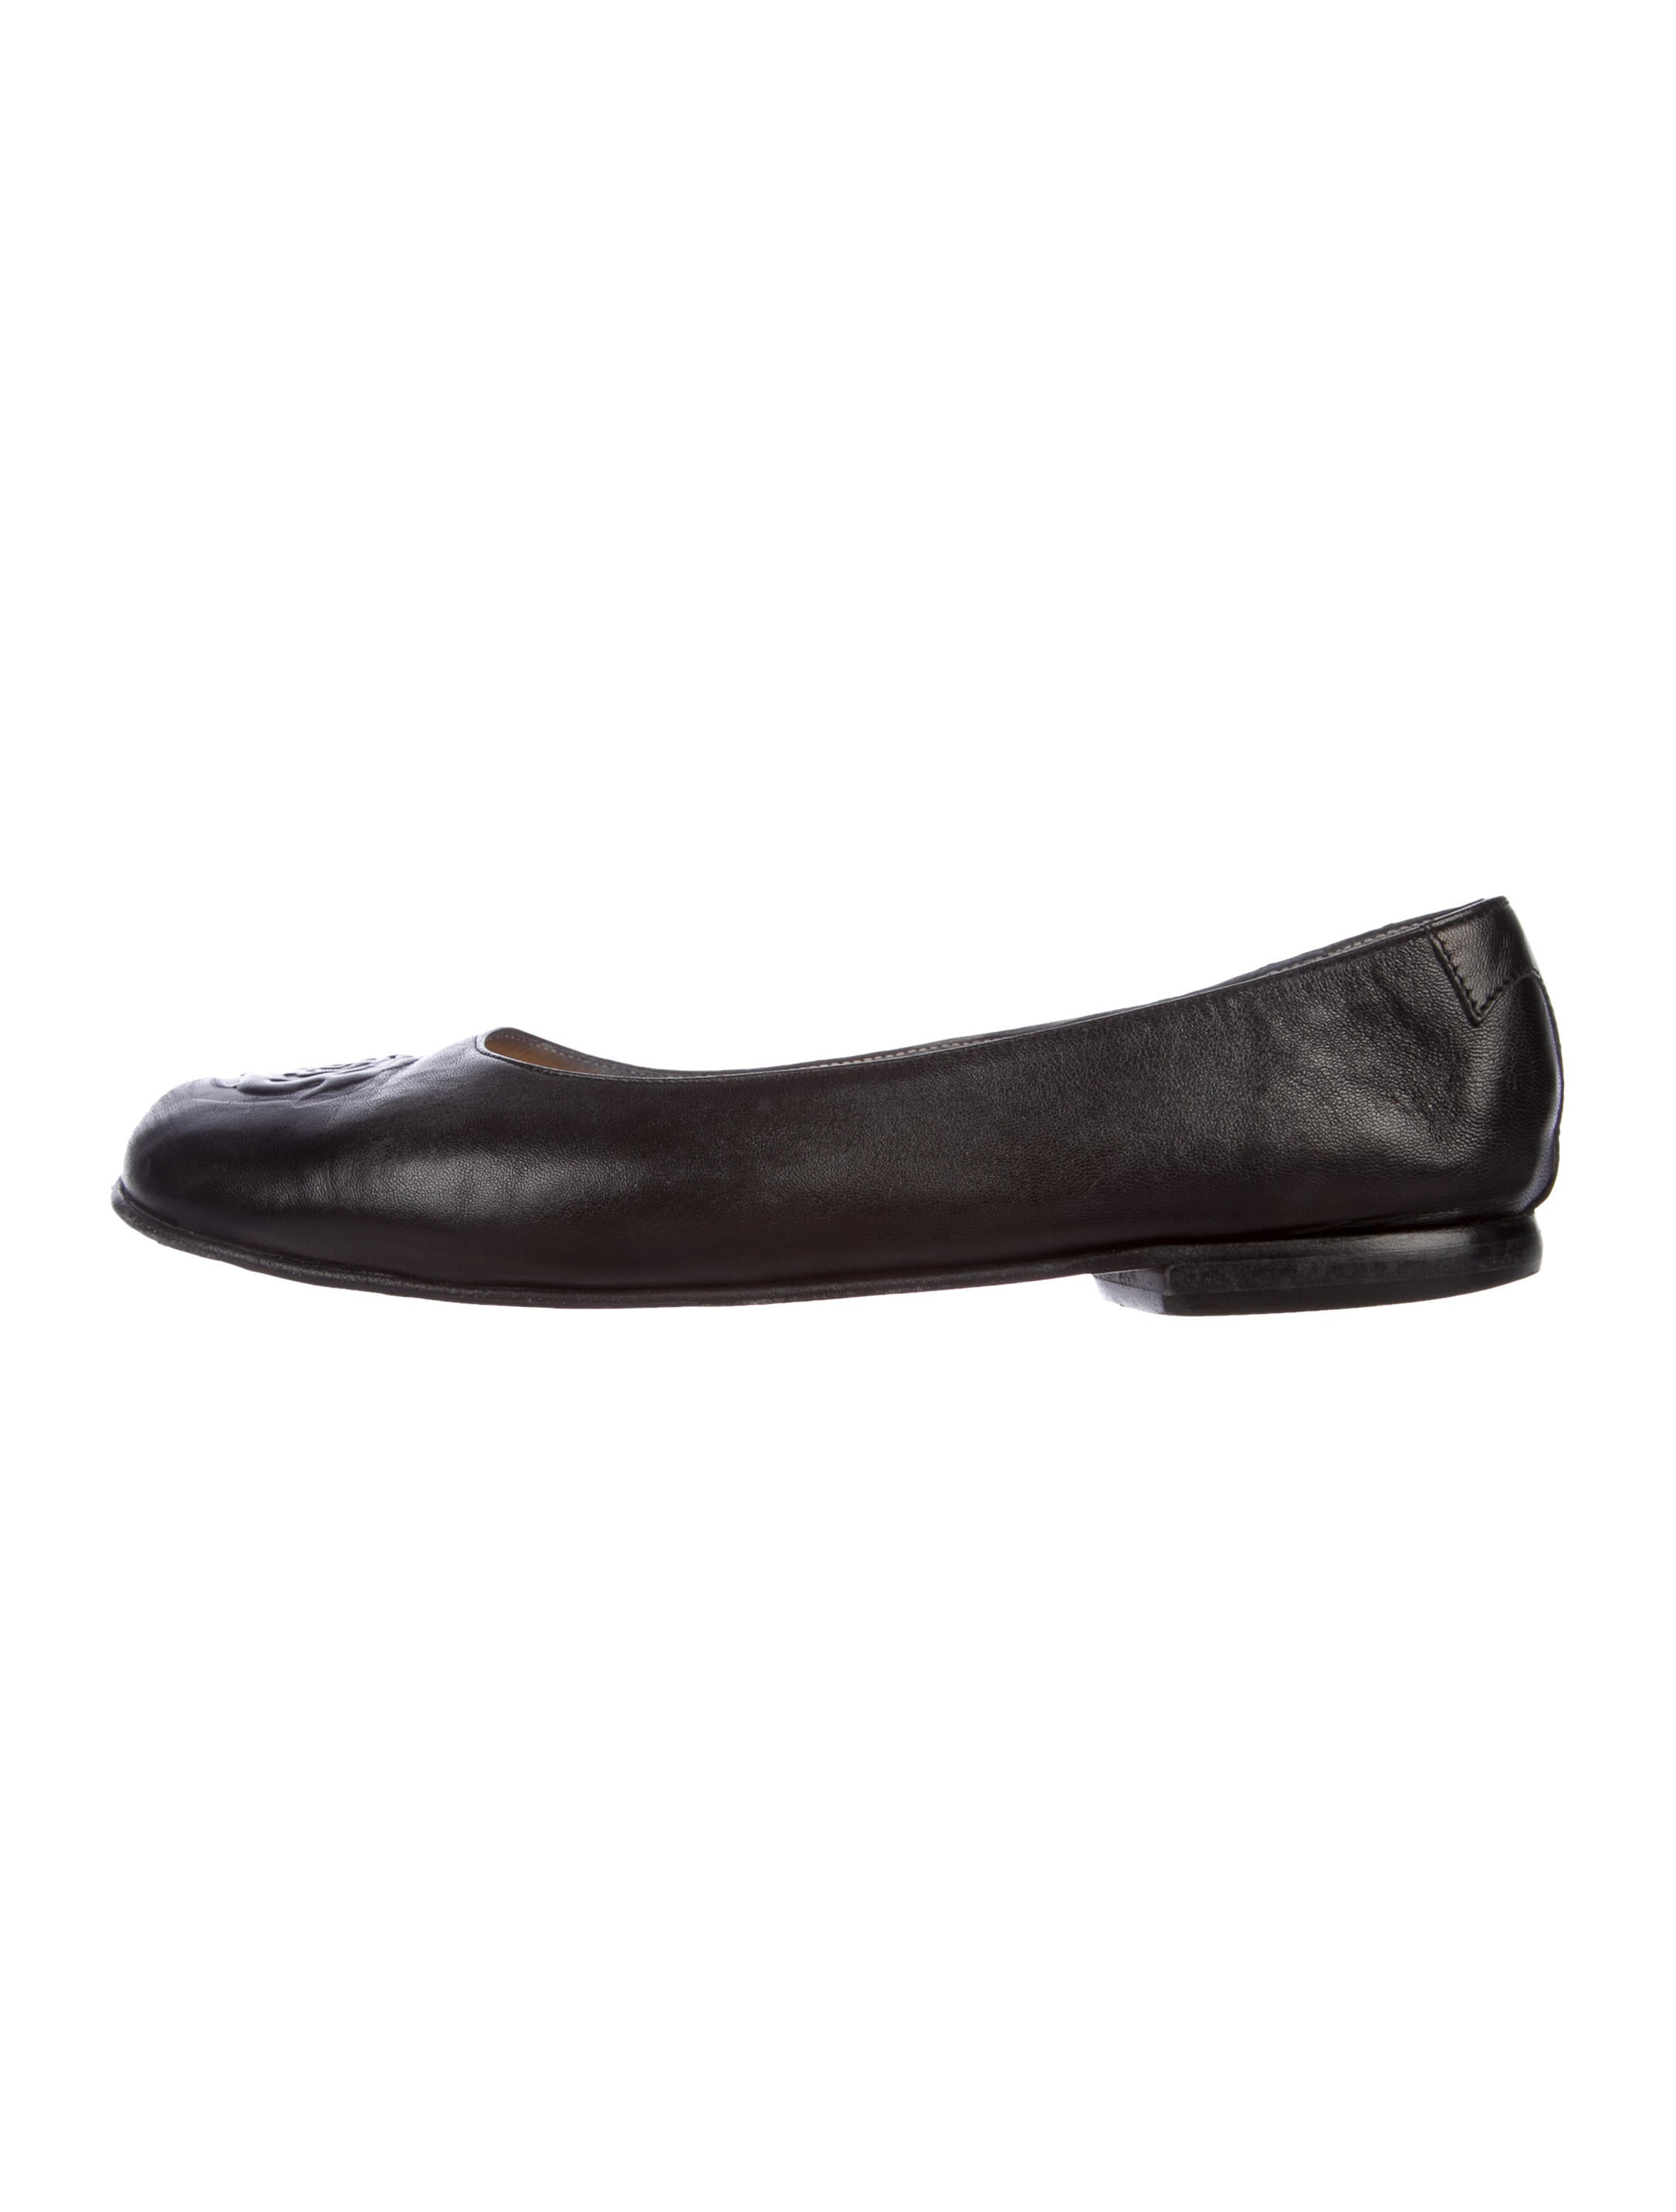 outlet locations cheap price outlet finishline Taryn Rose Basia Leather Flats big discount for sale 82IQVmz